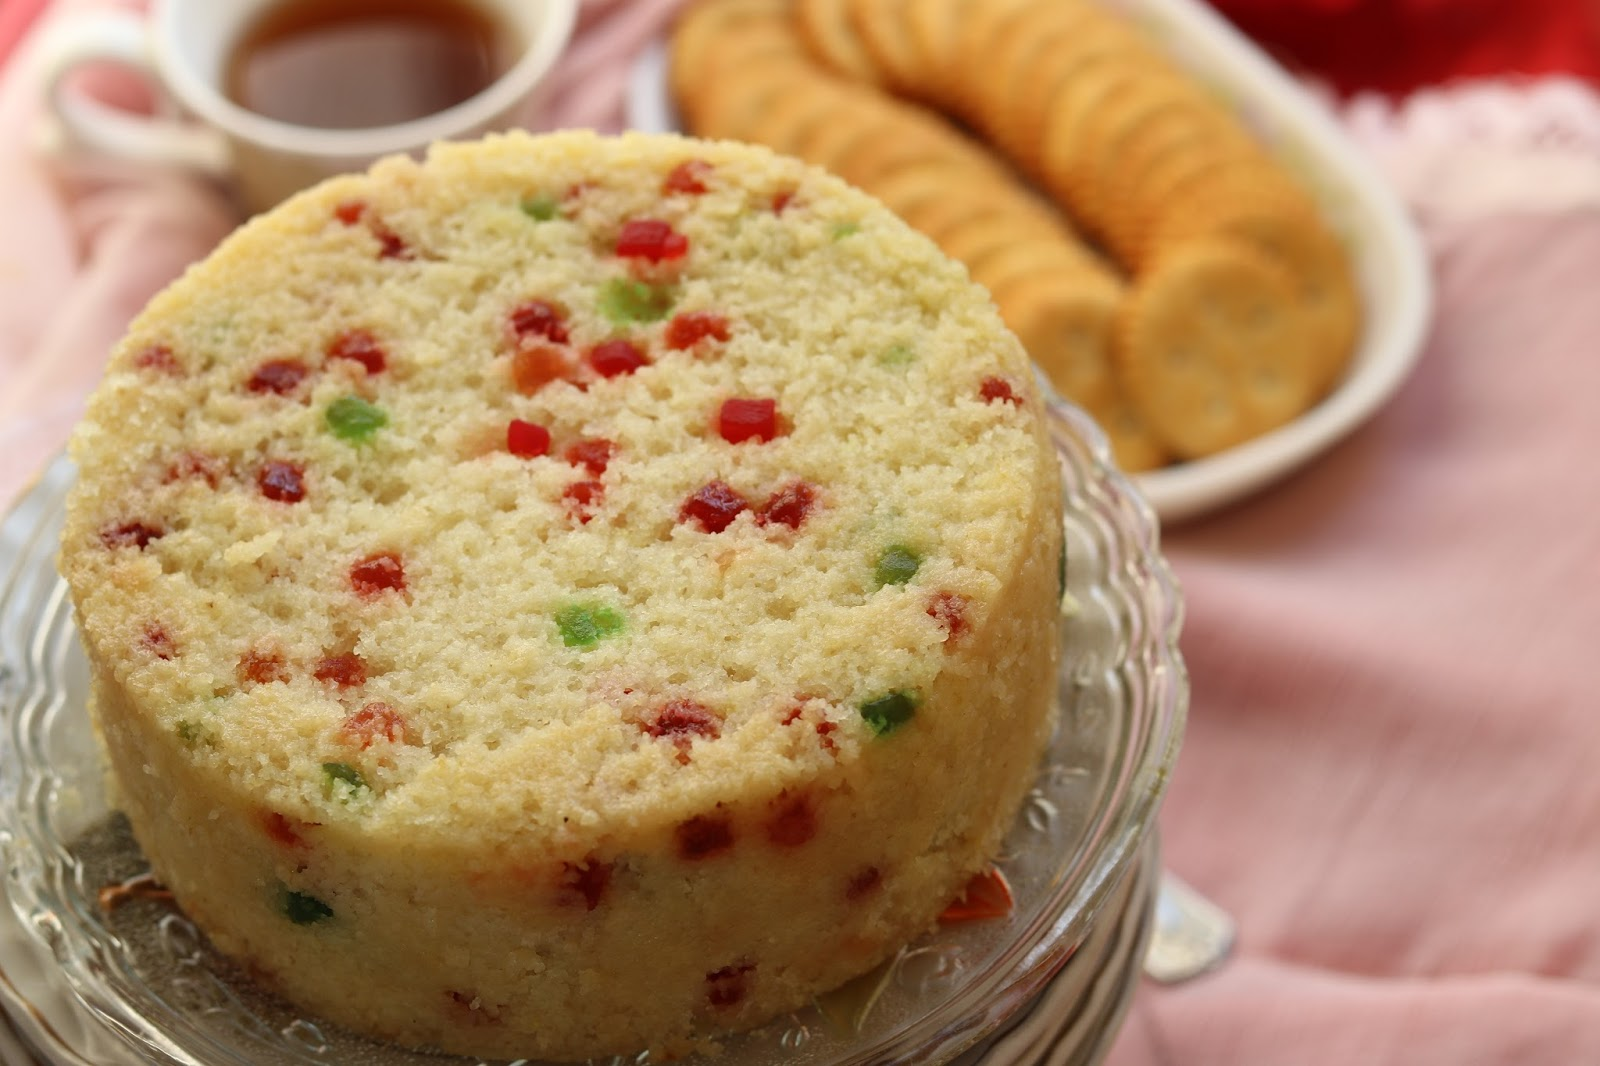 Rava Cake Recipe In Marathi Oven: Rava Cake Recipe In Pressure Cooker